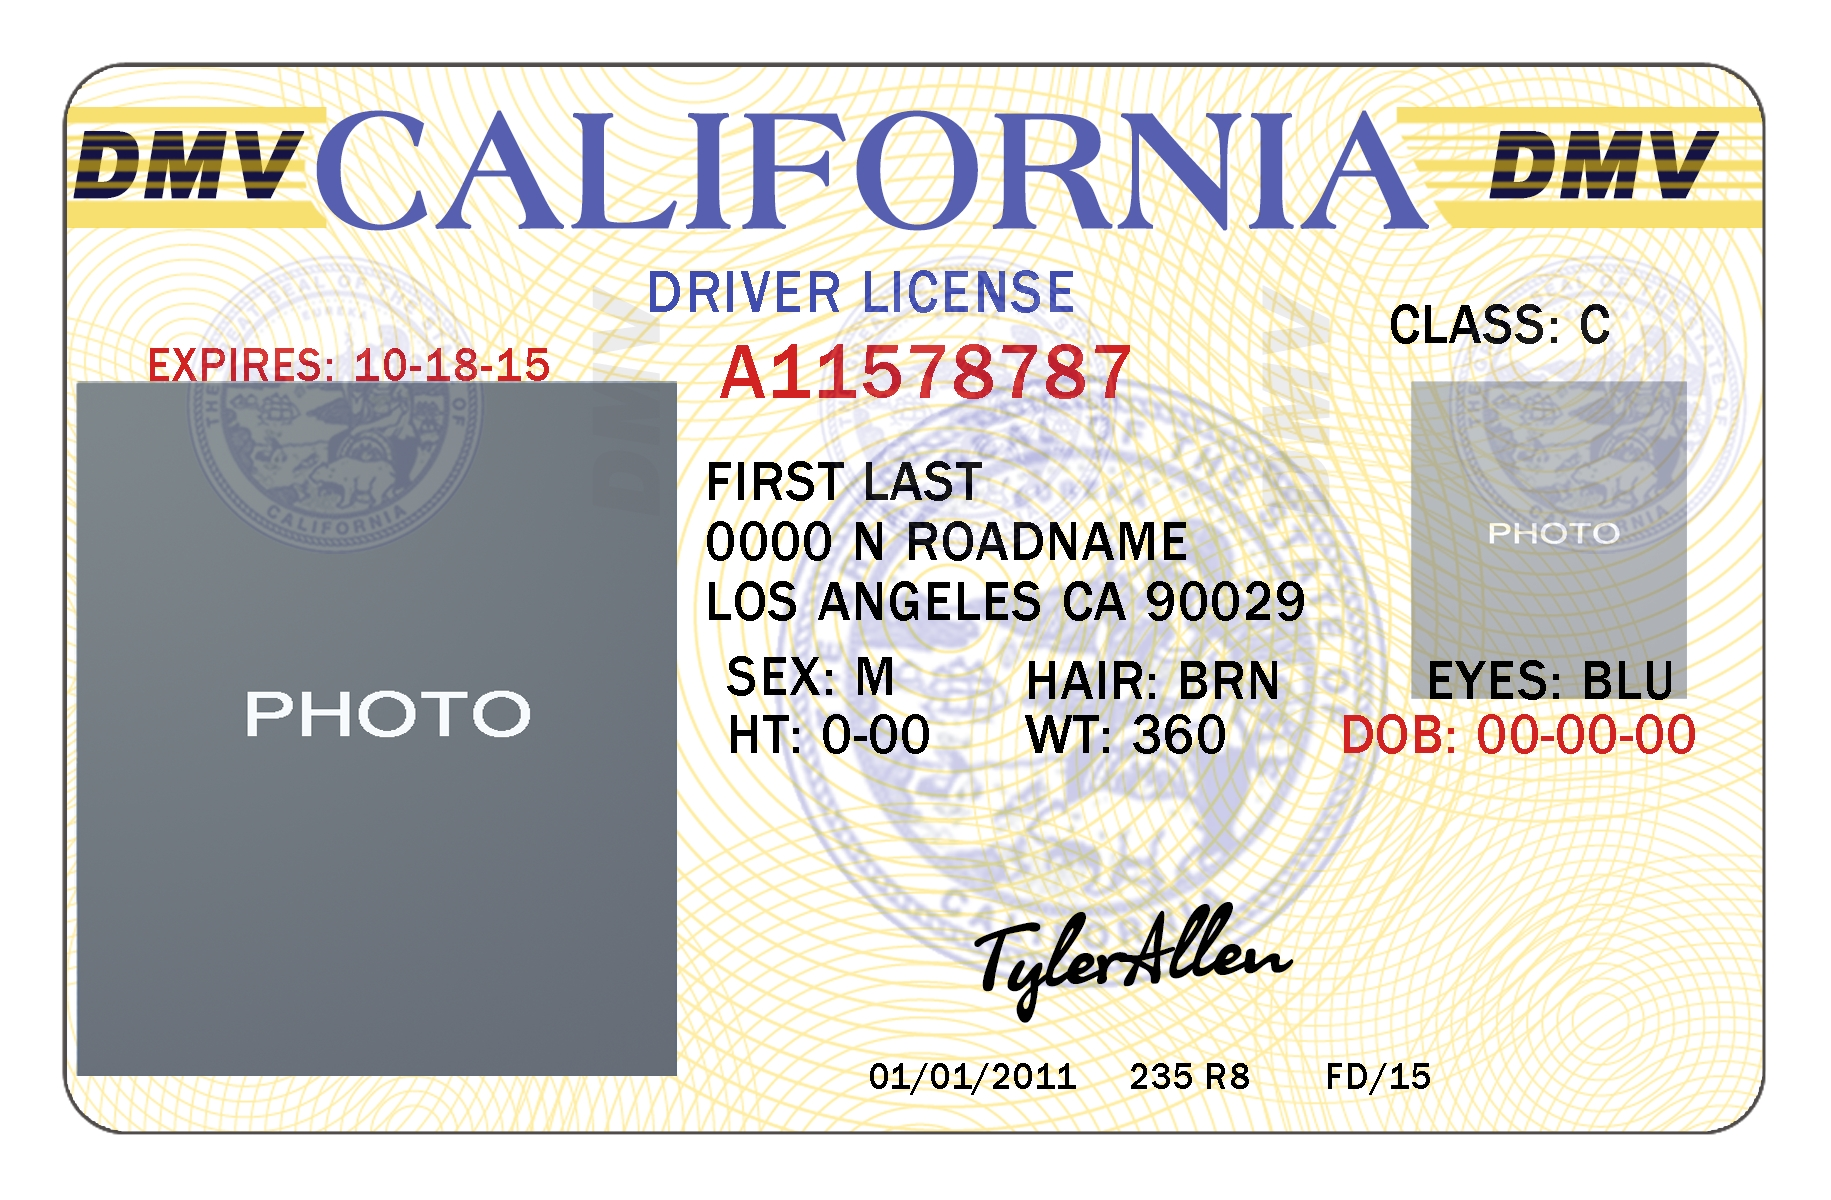 Send 1 california drivers license photoshop template by Chris_haralson